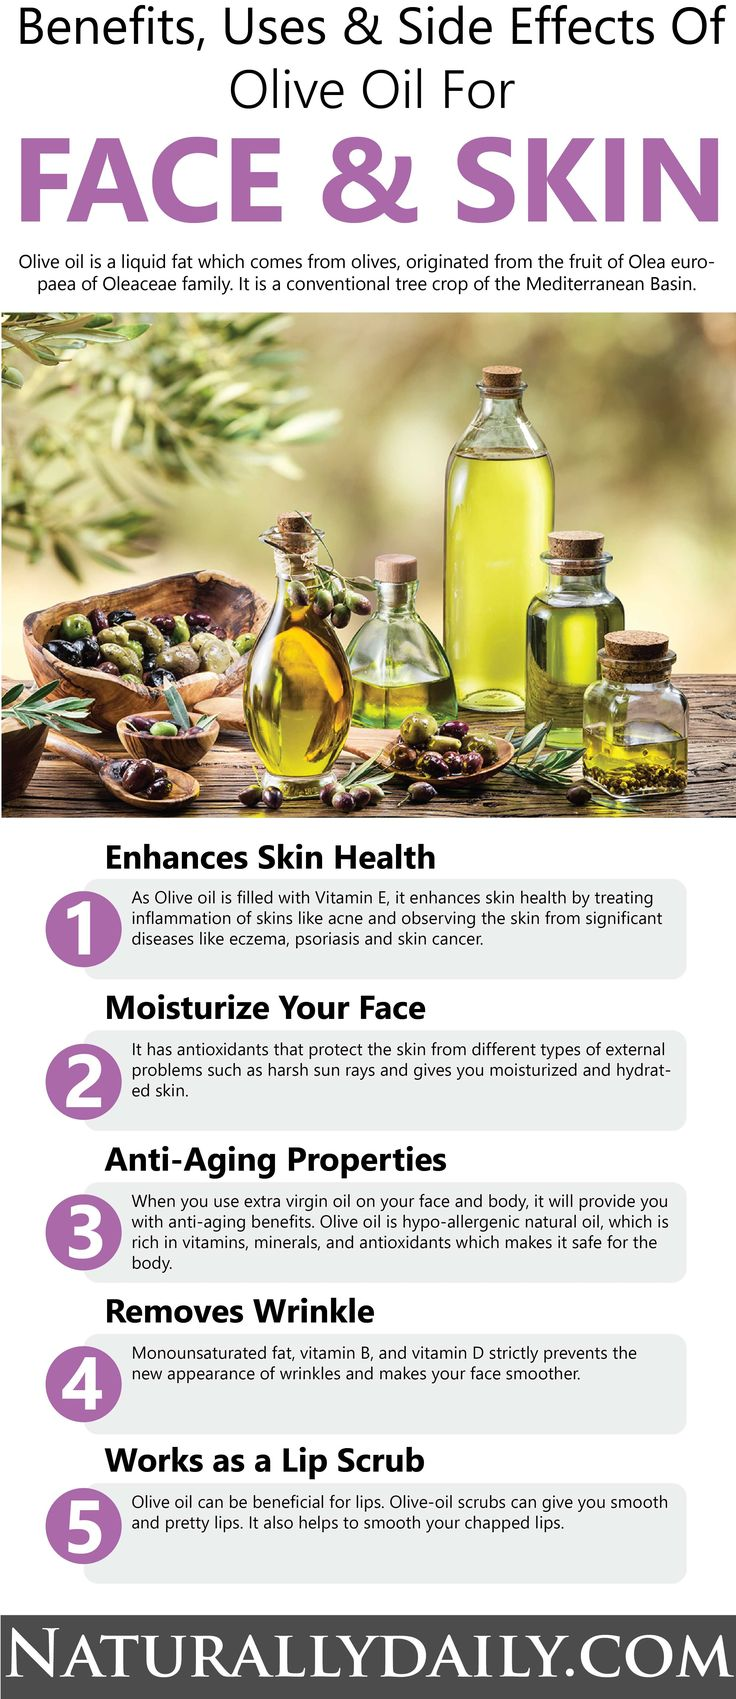 Olive Oil for Face and Skin Benefits, Uses, Side Effects